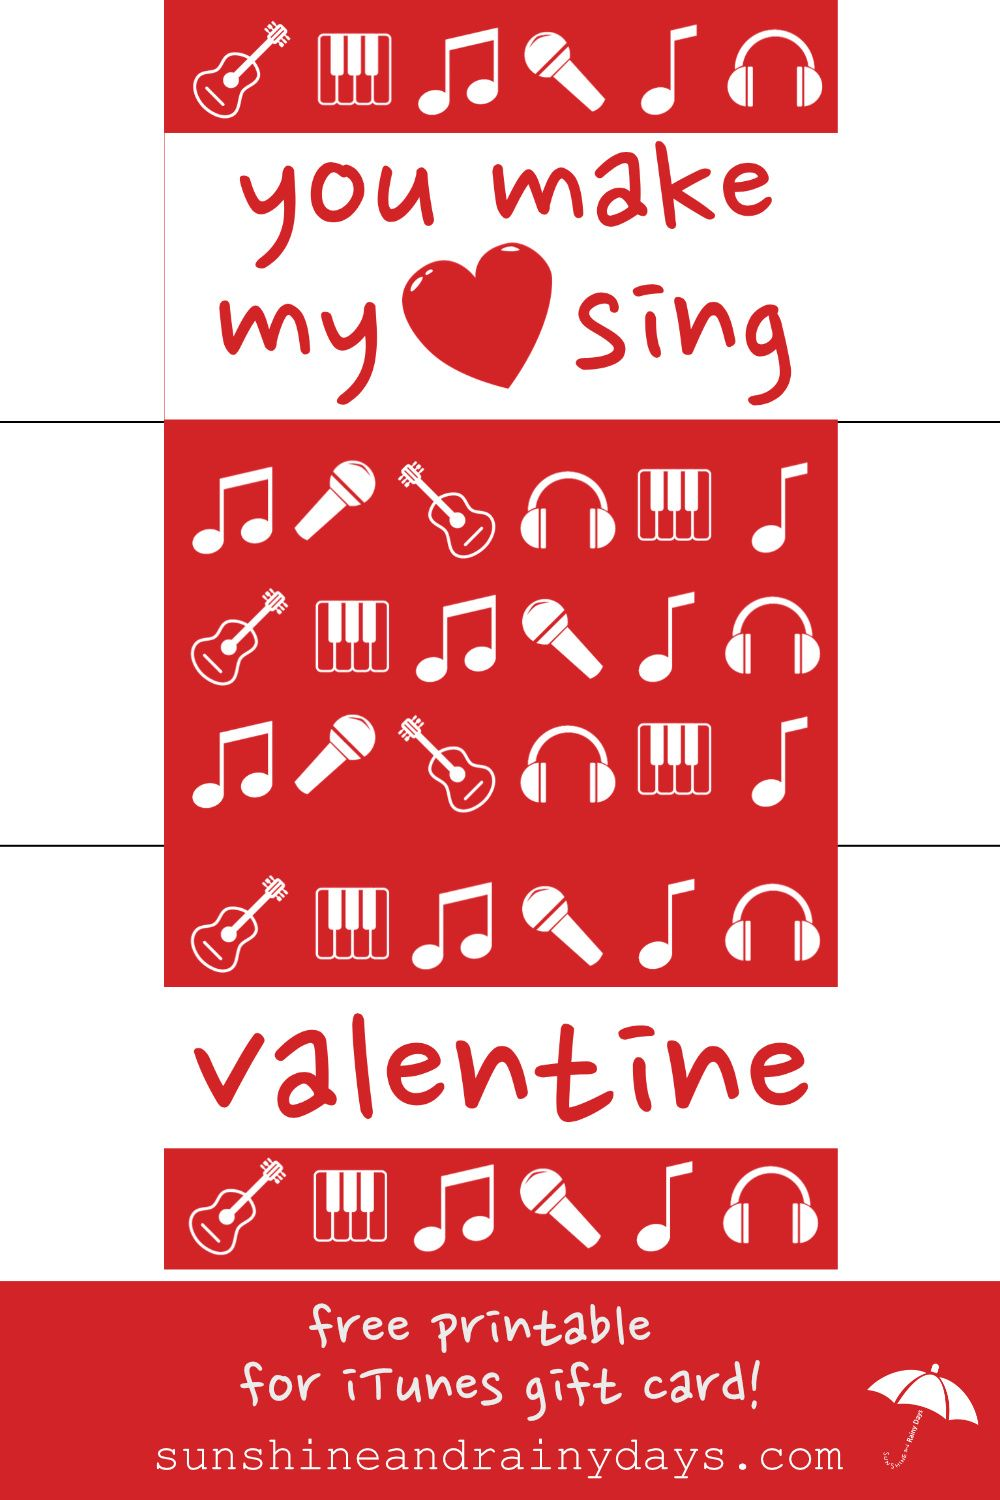 Printable valentine itunes gift card holder itunes gift cards and giving the gift of music in the form of an itunes gift card make it yelopaper Choice Image